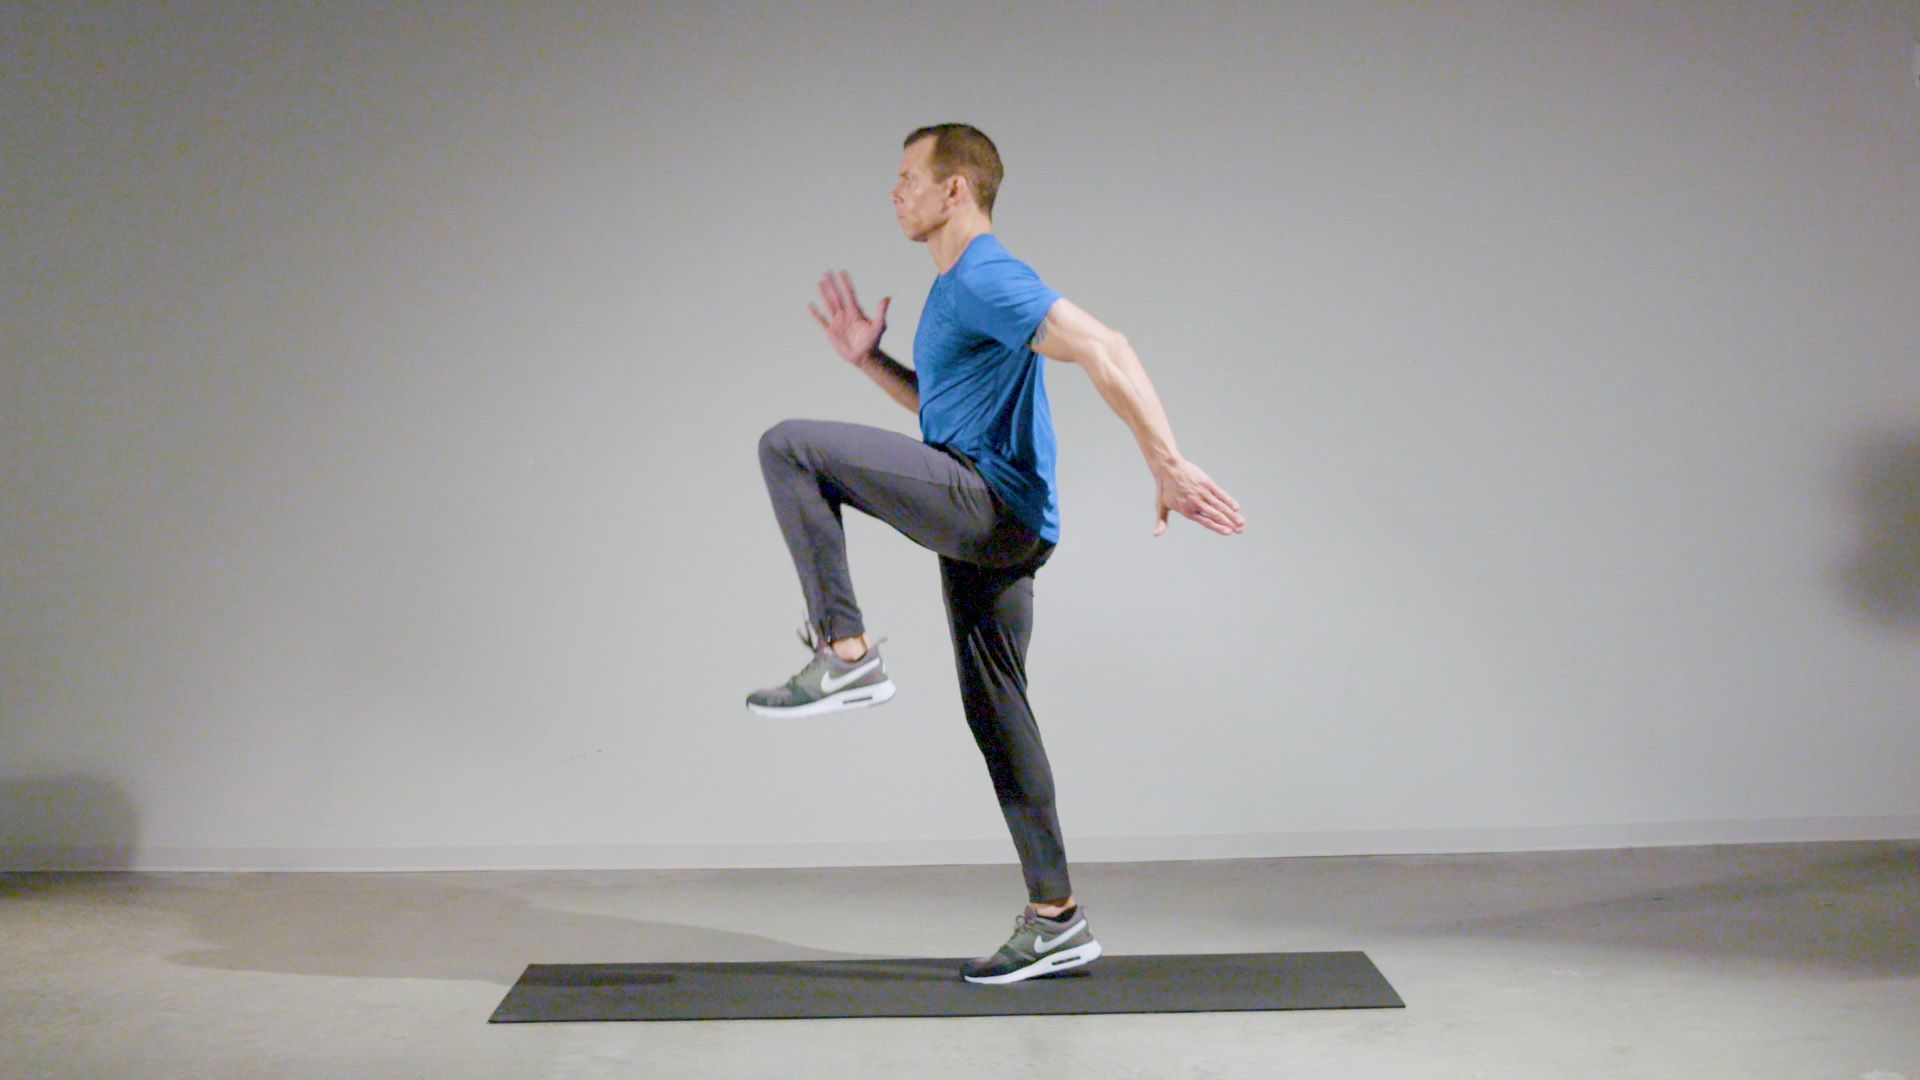 This Bodyweight Mobility Workout Can Build Strength in Less Than 20 Minutes